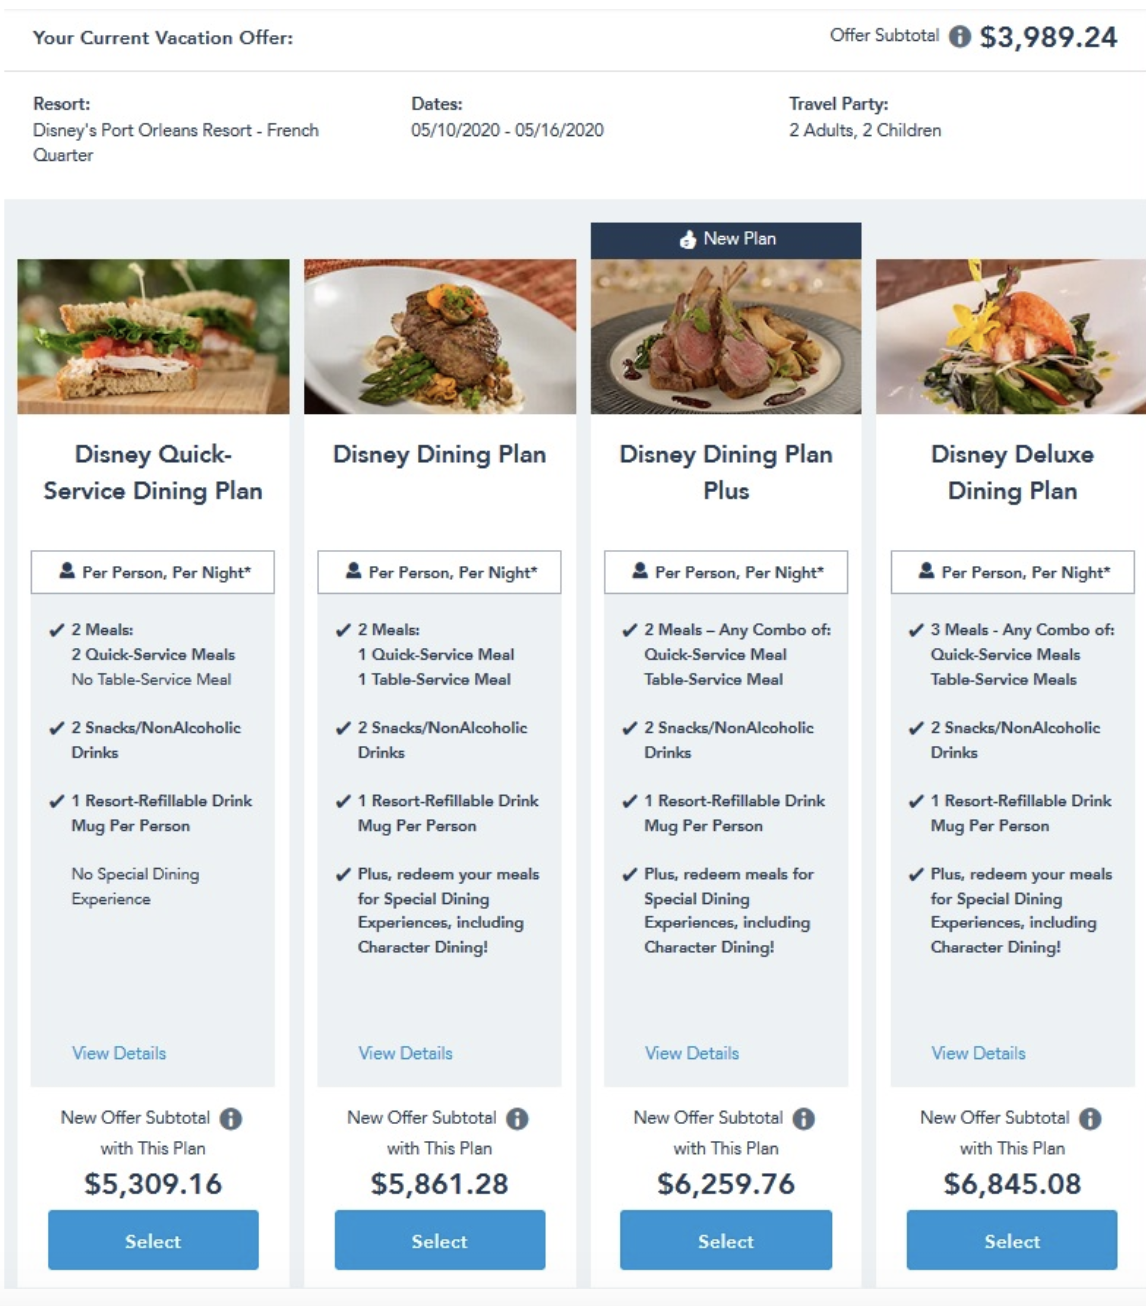 Disney World Just Released A New Disney Dining Plan Plus Option Is It A Game Changer Get All The Details Here The Disney Food Blog